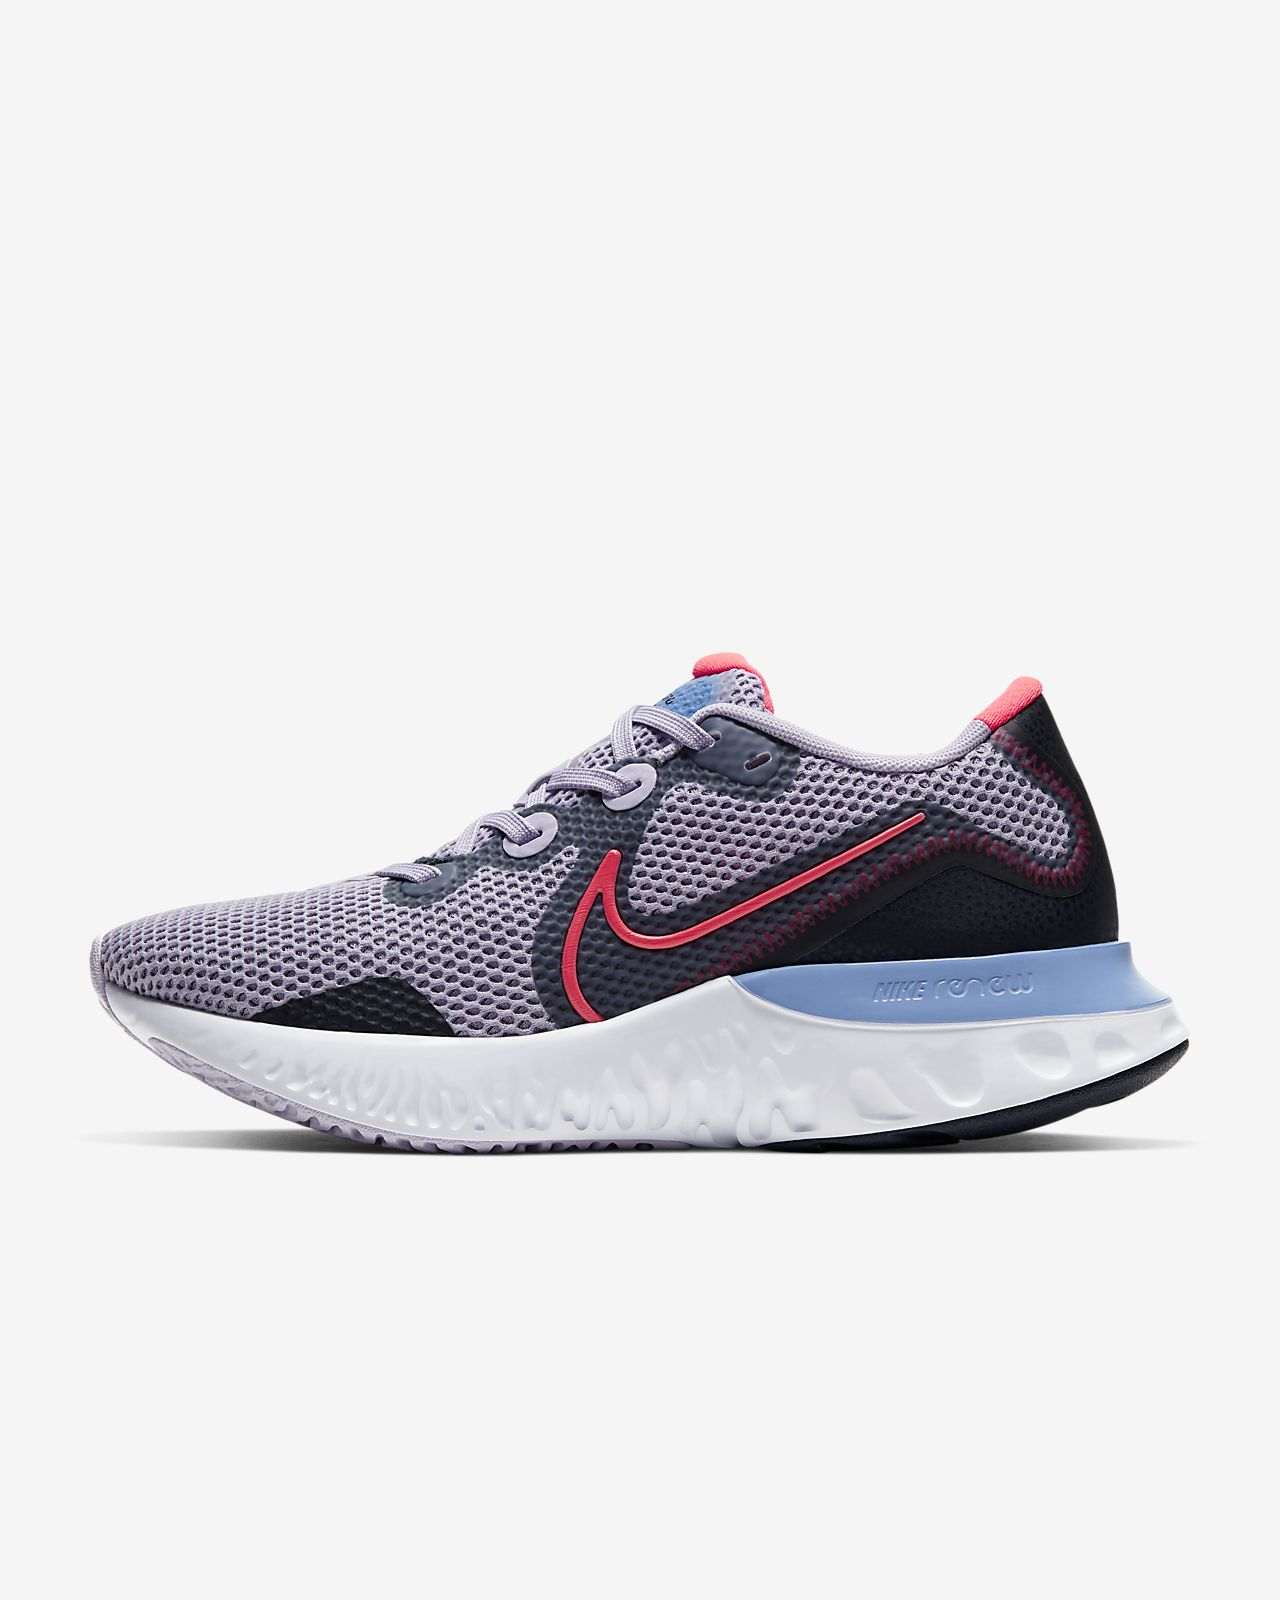 Nike Renew Run Women's Running Shoe